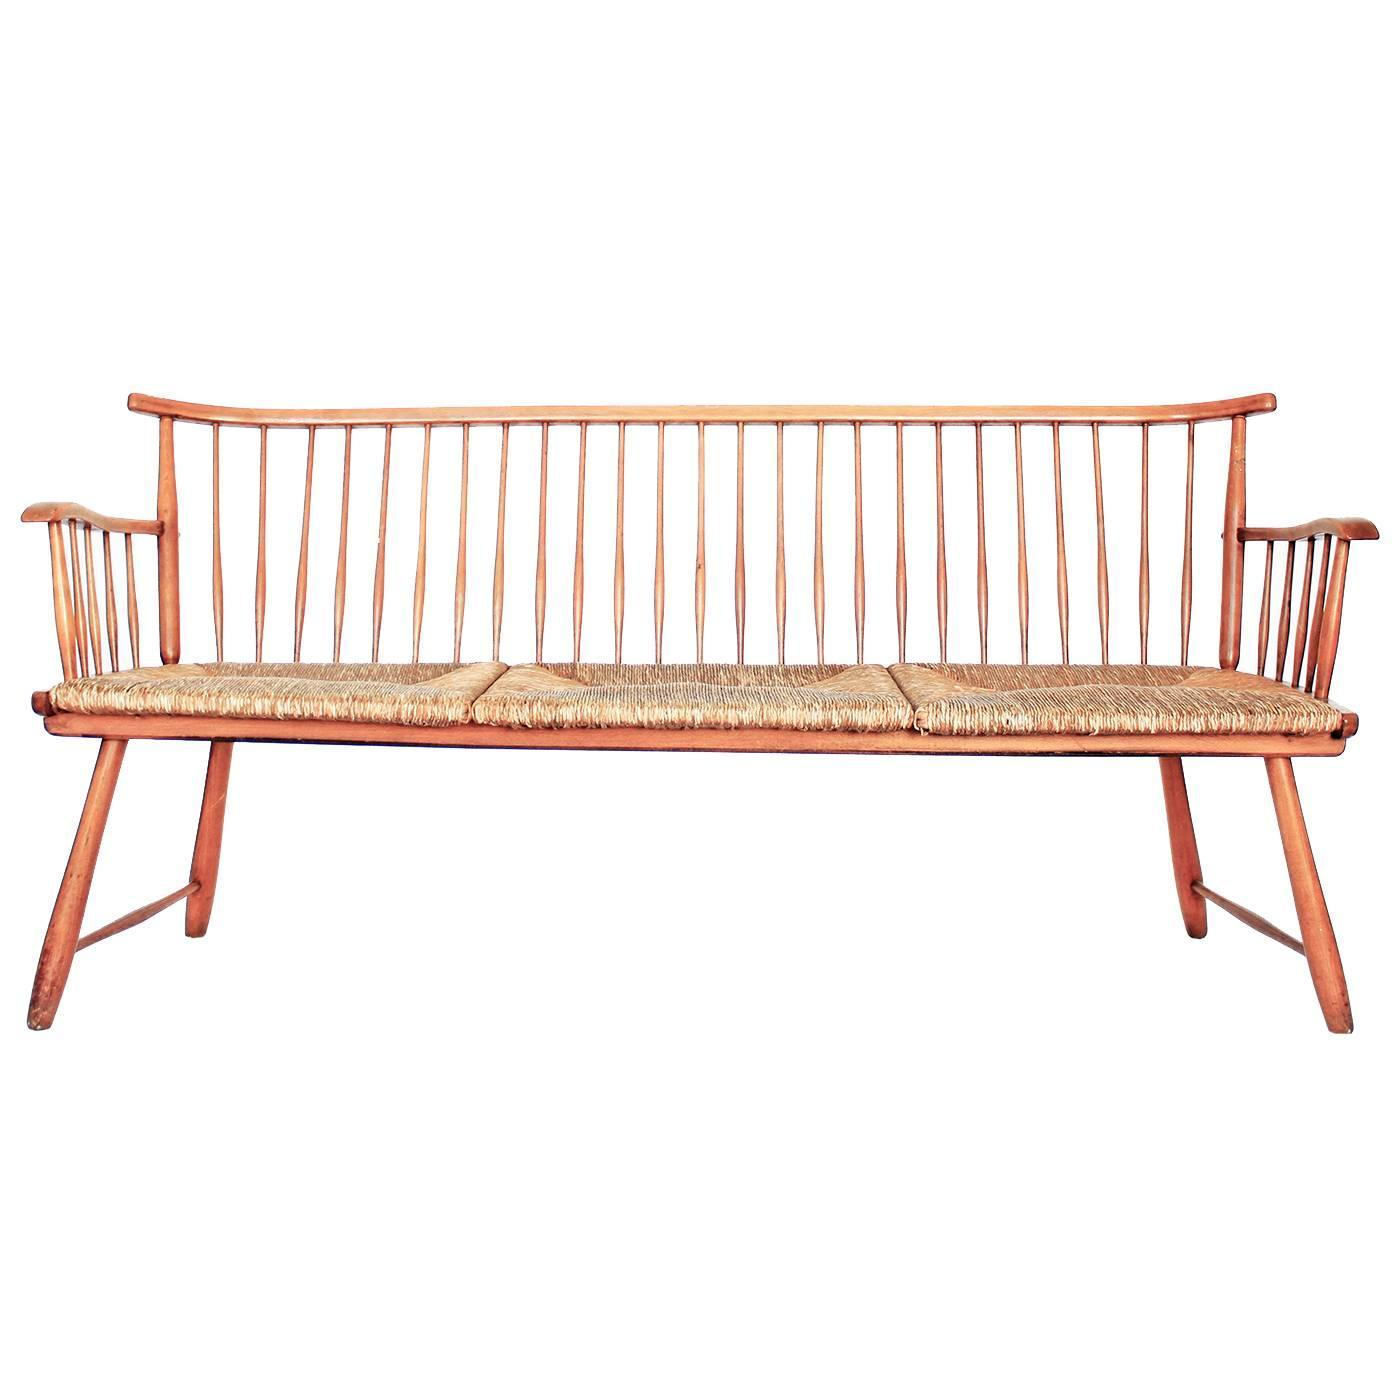 Shaker Style Bench Designed By Arno Lambrecht For Sale At